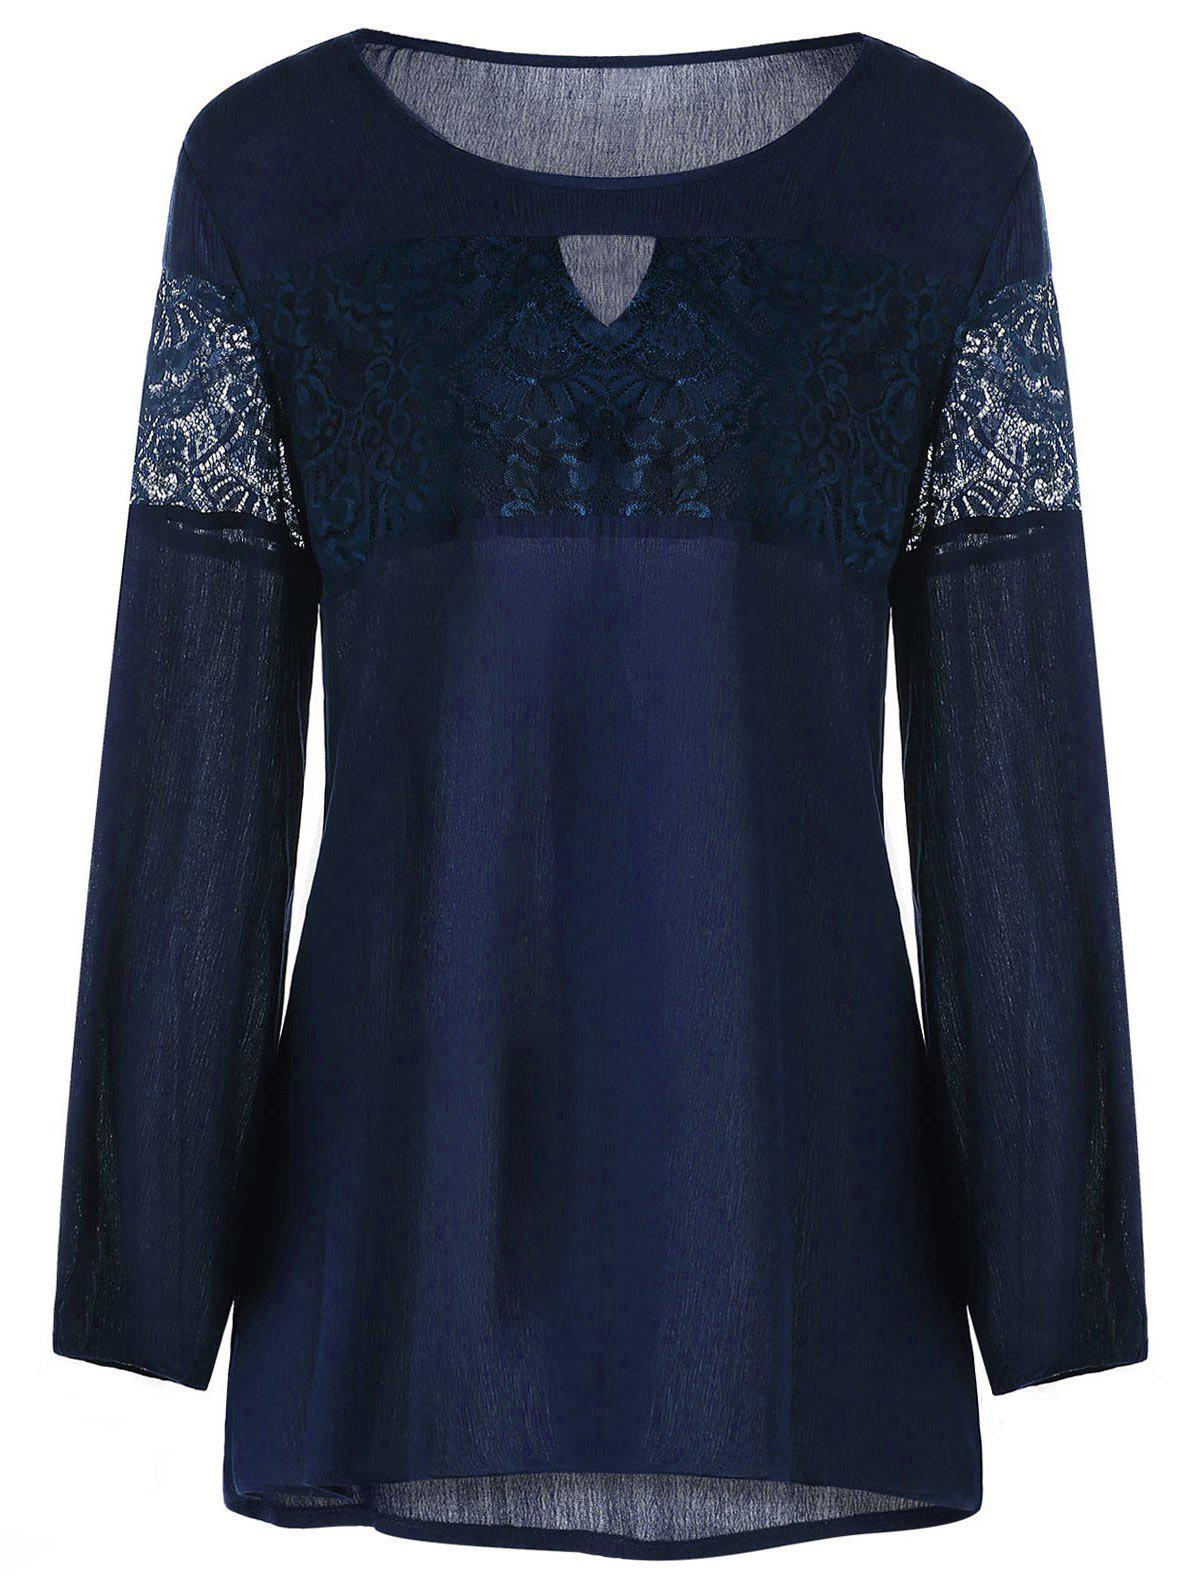 Plus Size Lace Insert Keyhole Neck Blouse - PURPLISH BLUE XL